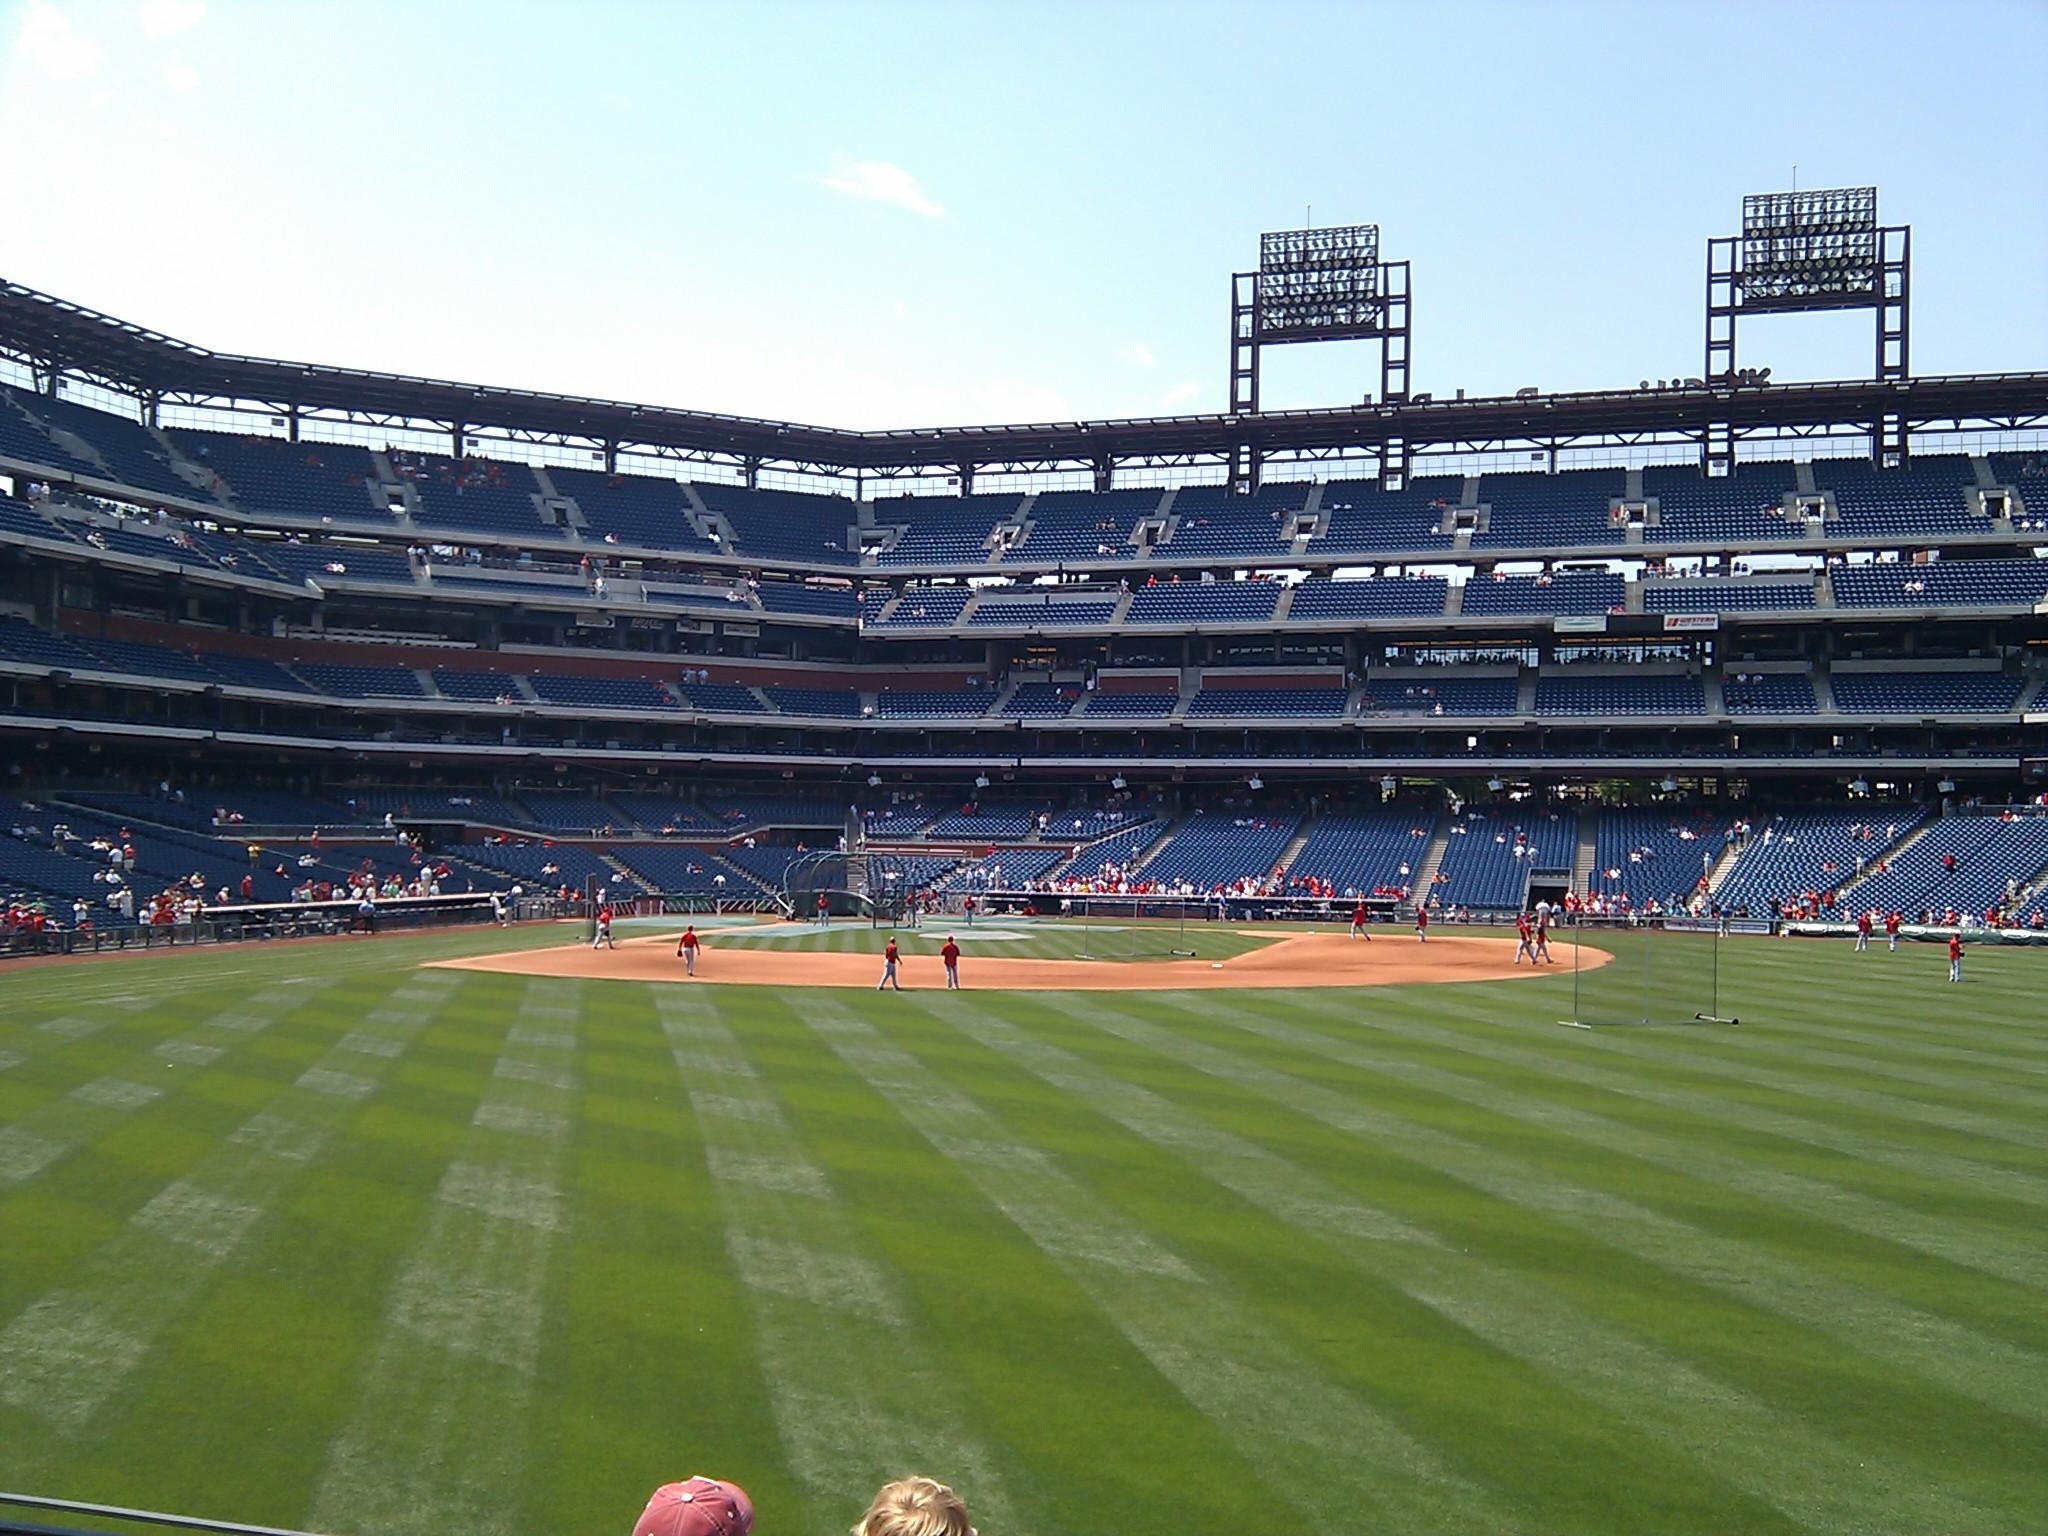 Citizens Bank Park Section 103 Row 4 Seat 10